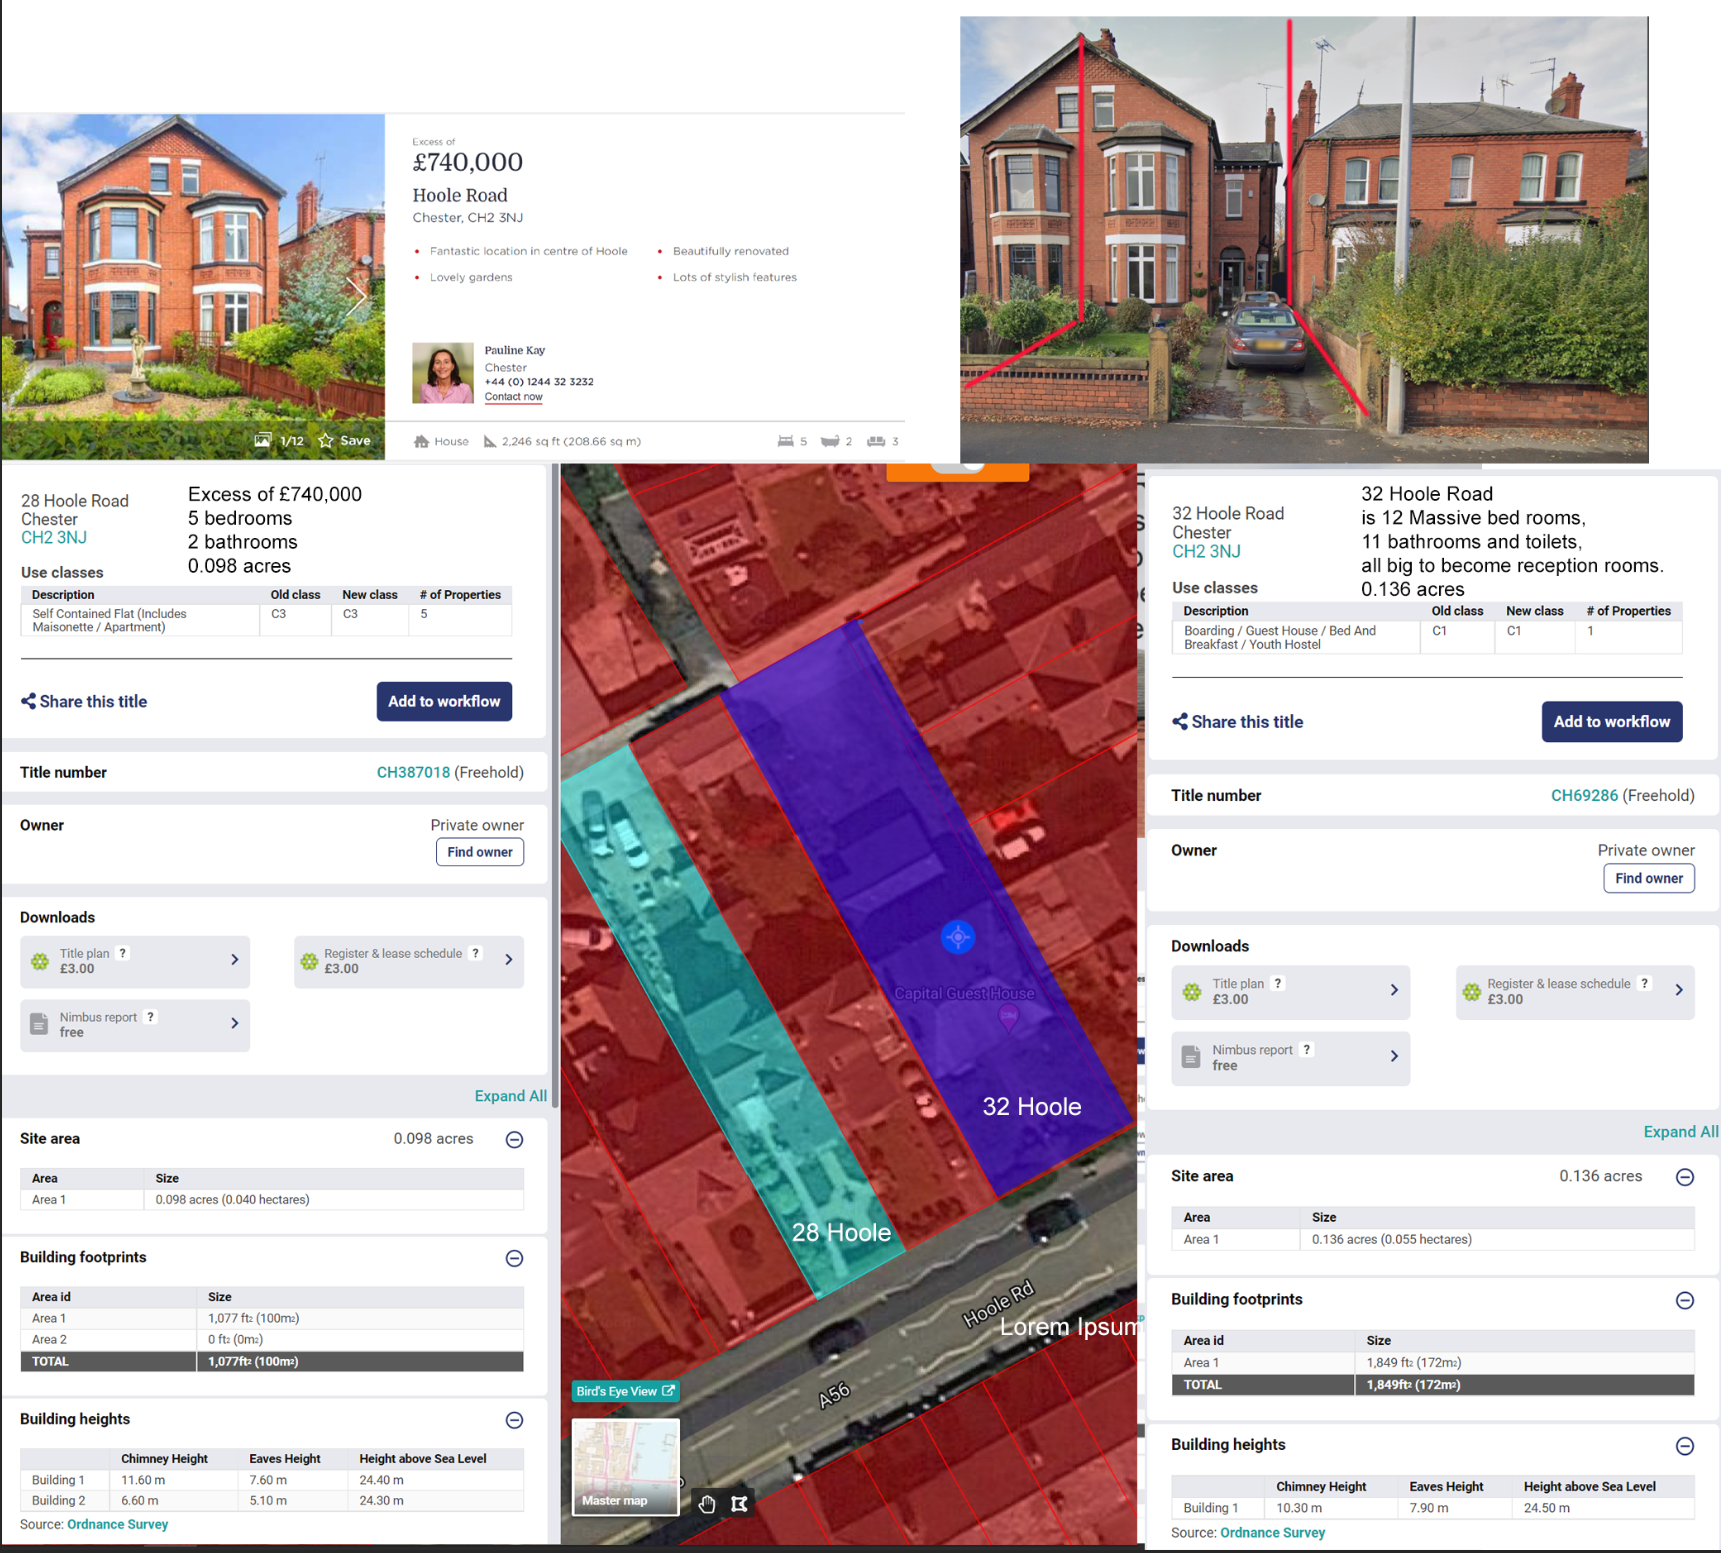 Spot the difference with 28 and 32 hoole road Chester image.